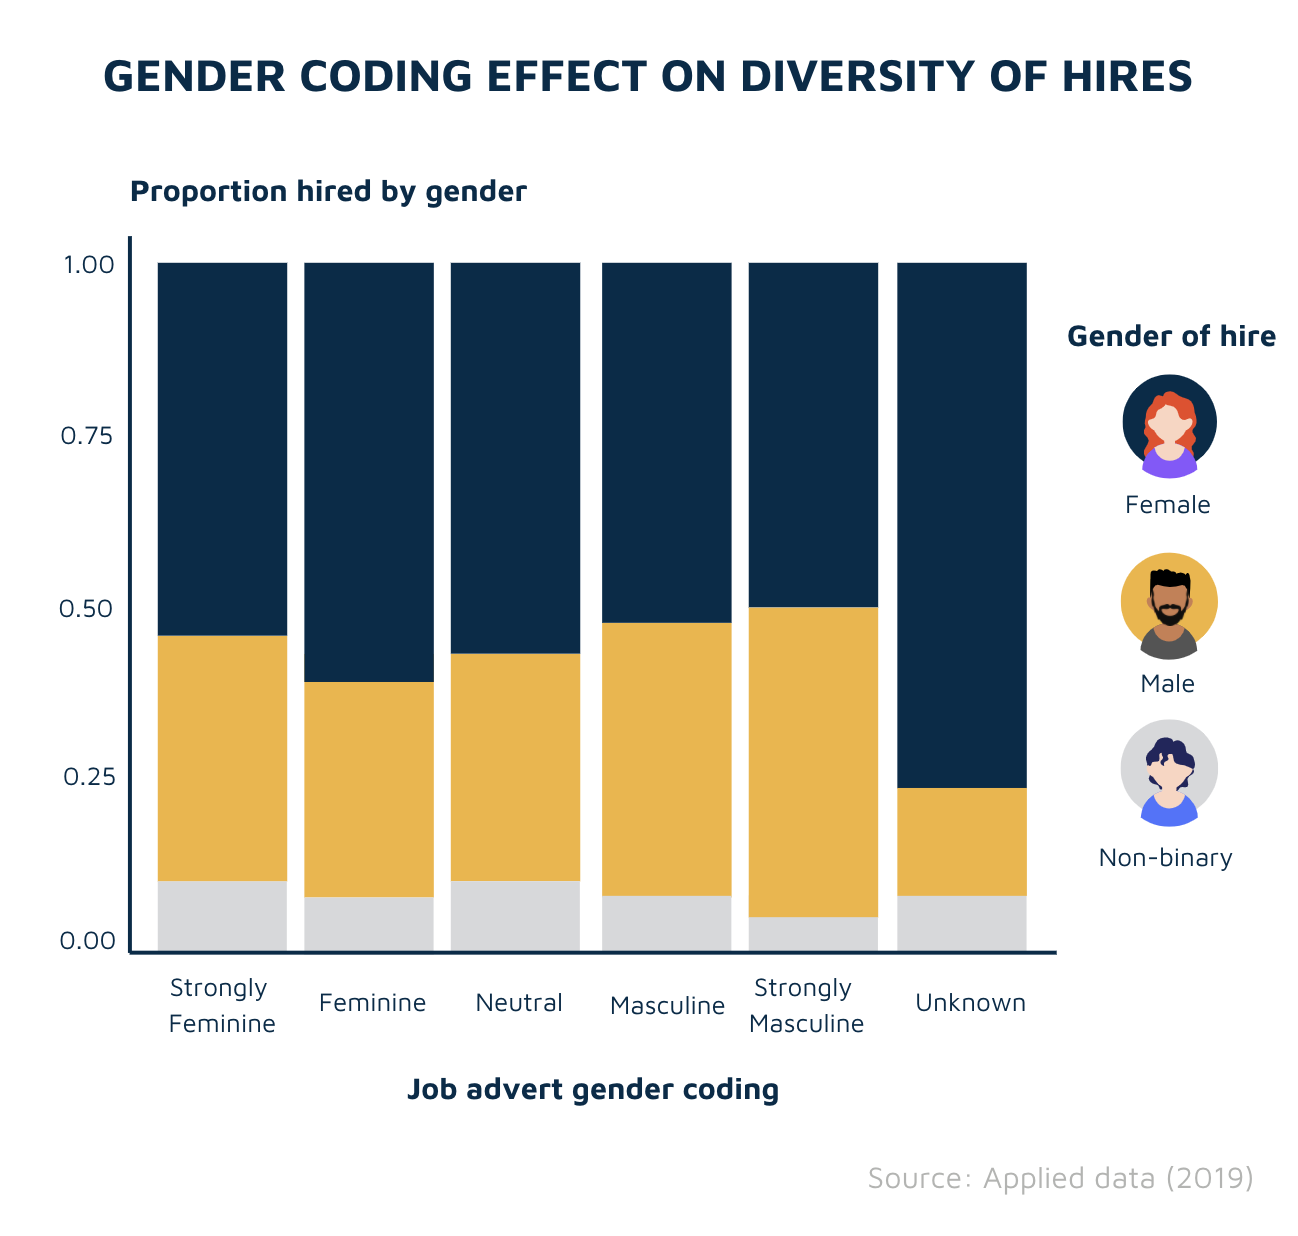 Gender coding effect on diversity of hires